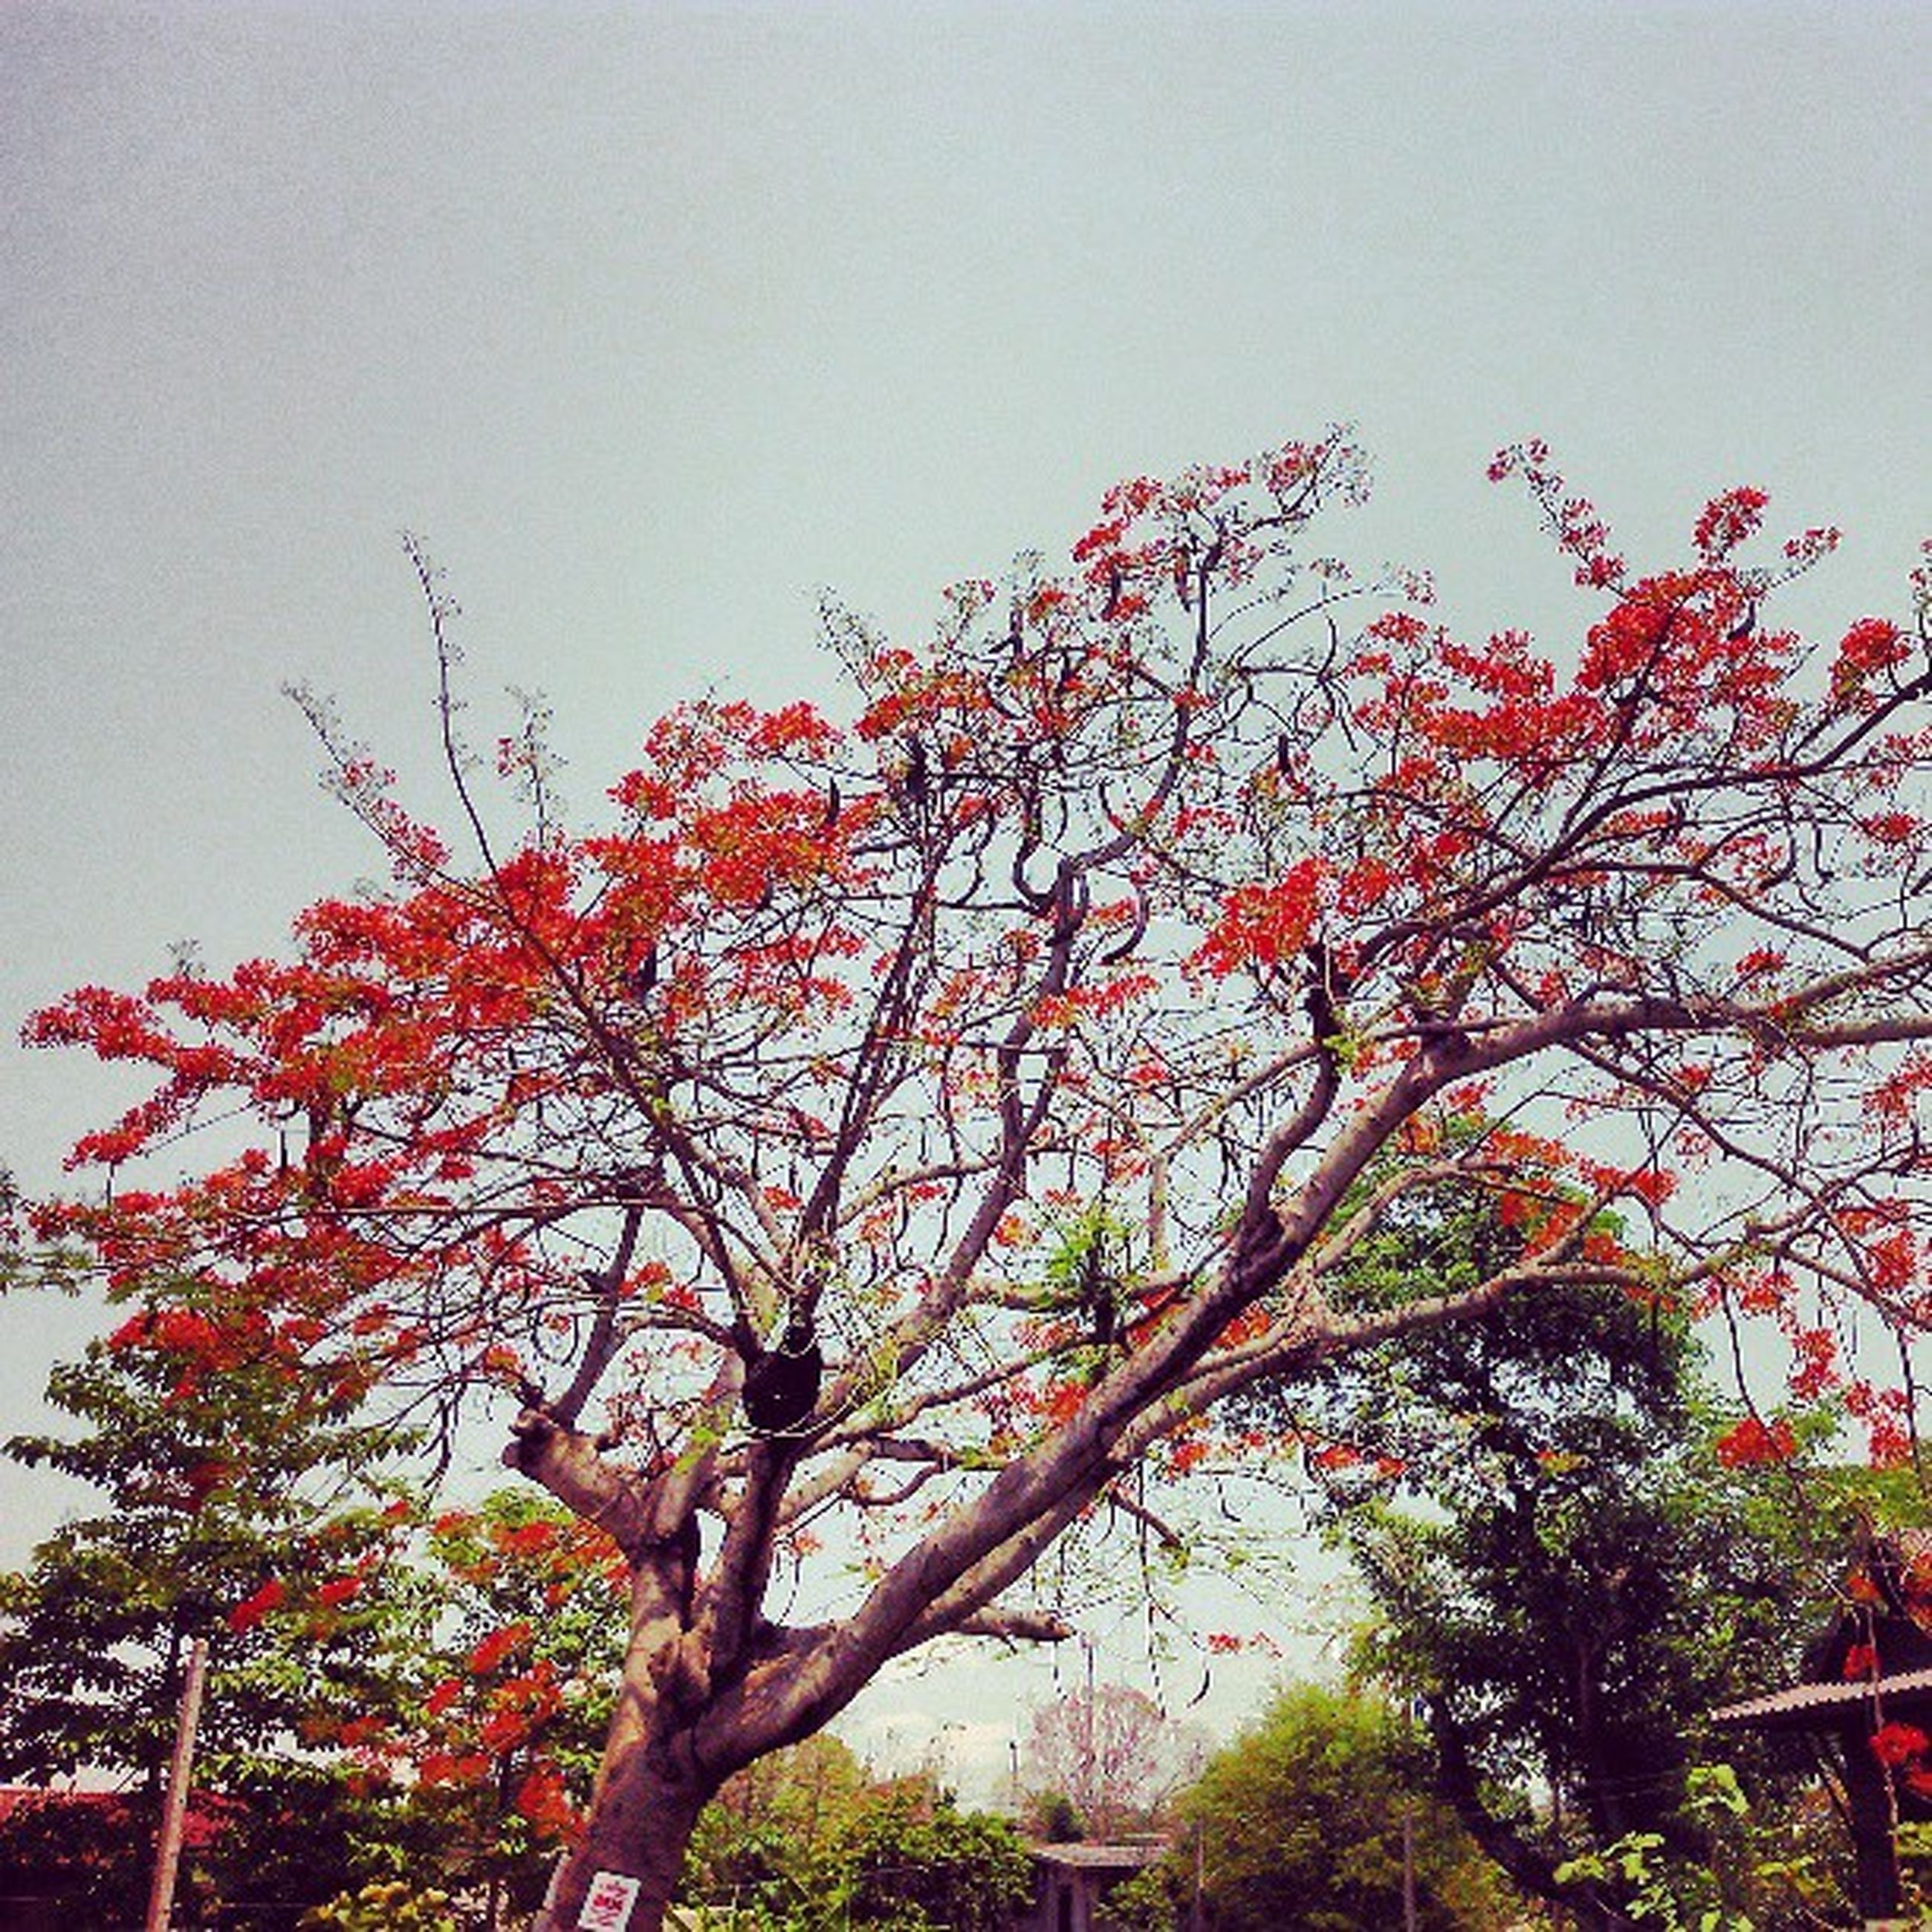 tree, low angle view, clear sky, growth, branch, beauty in nature, nature, flower, red, autumn, sky, copy space, day, change, built structure, building exterior, season, freshness, outdoors, no people